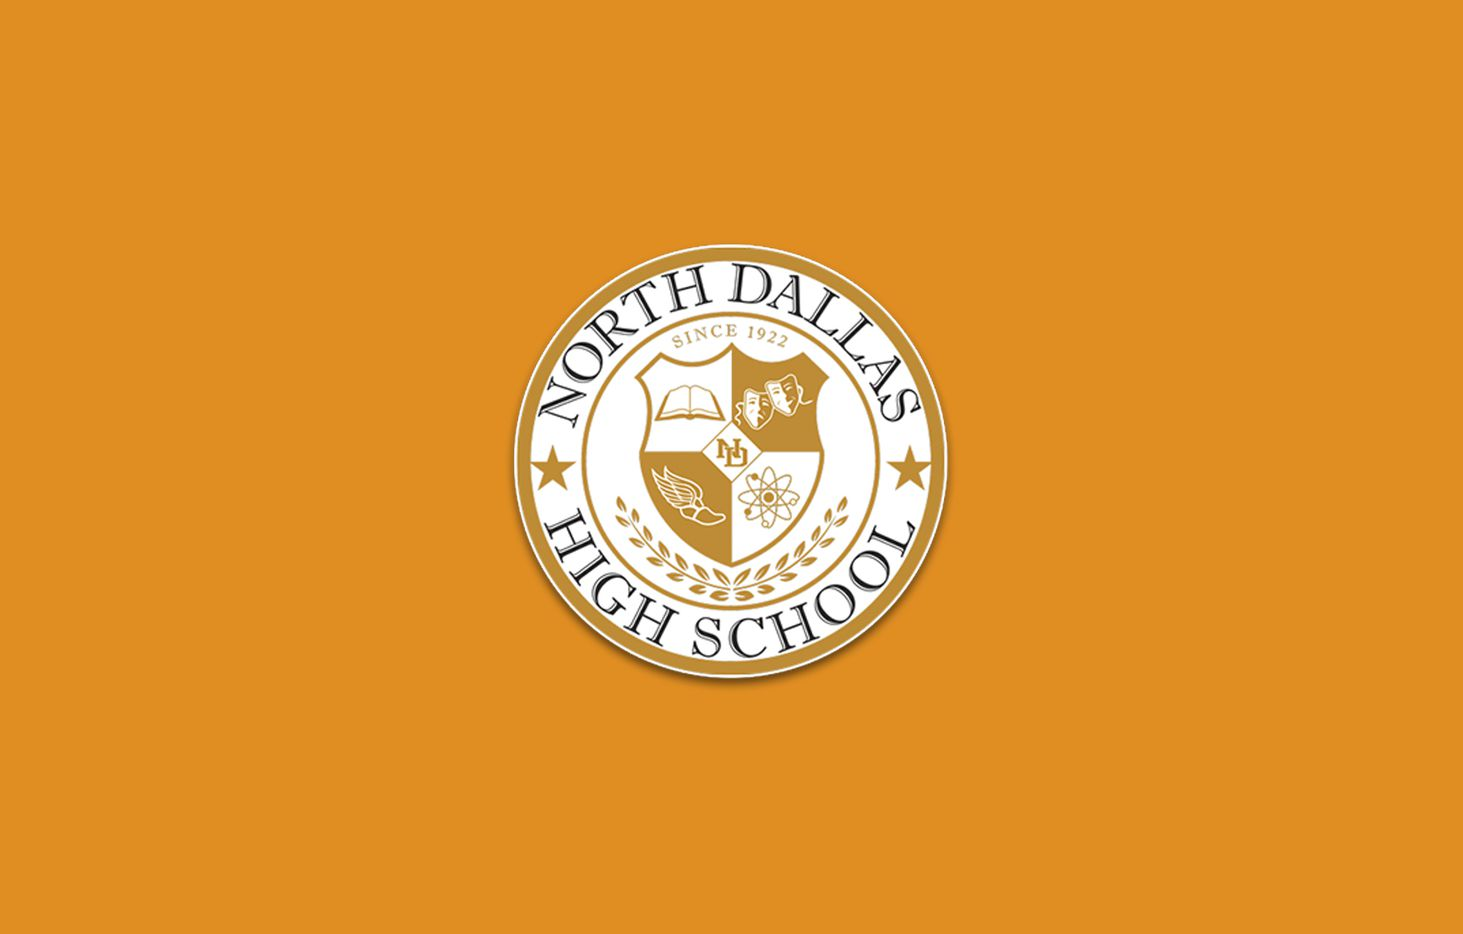 North Dallas logo.